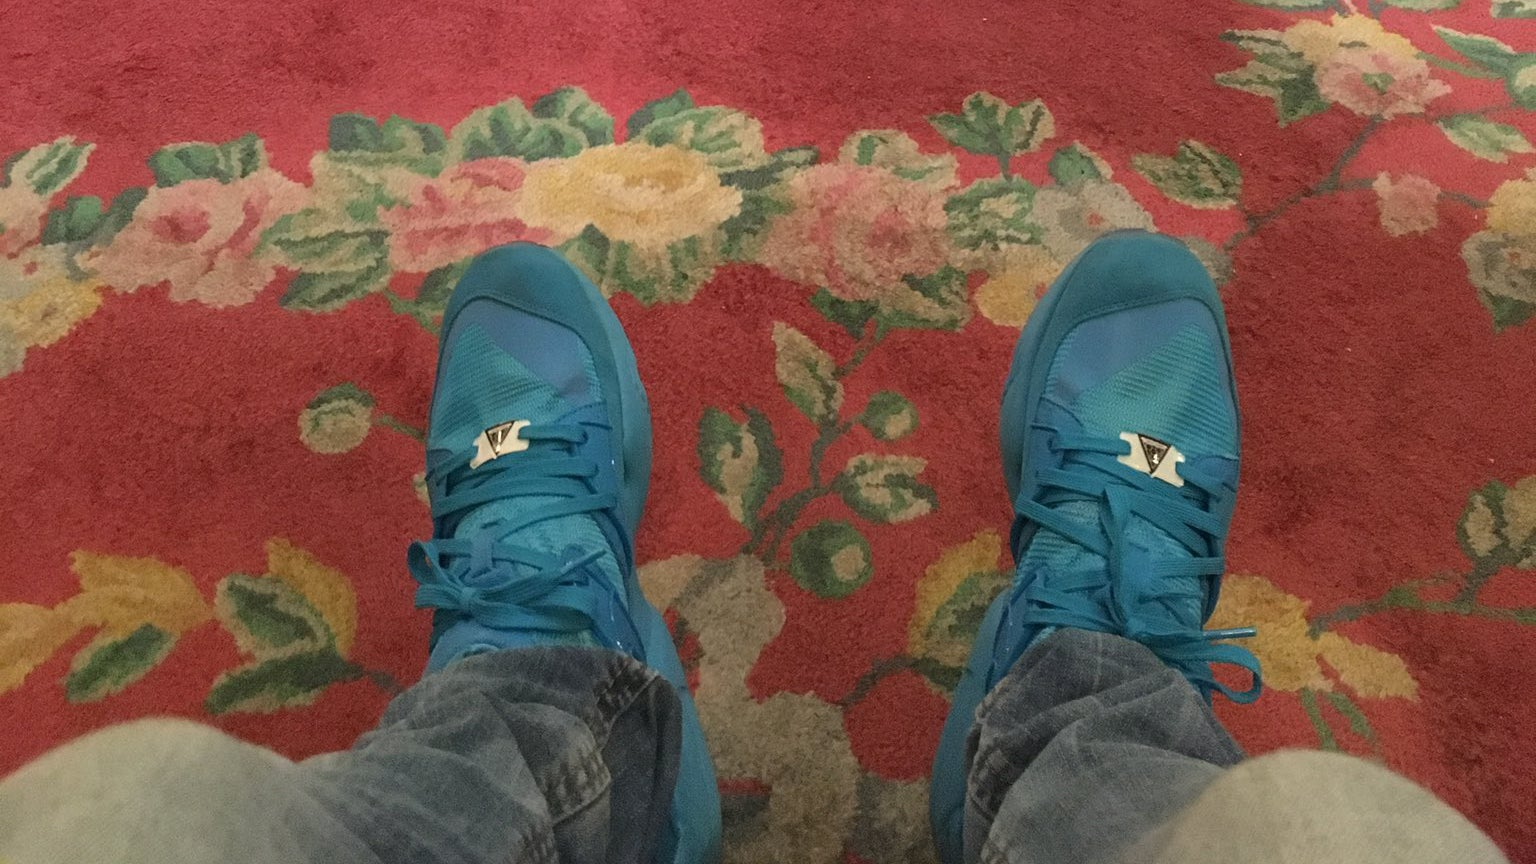 Rich VC Gets Kicked Out Of London's Ritz For Wearing Sneakers, Whining Ensues